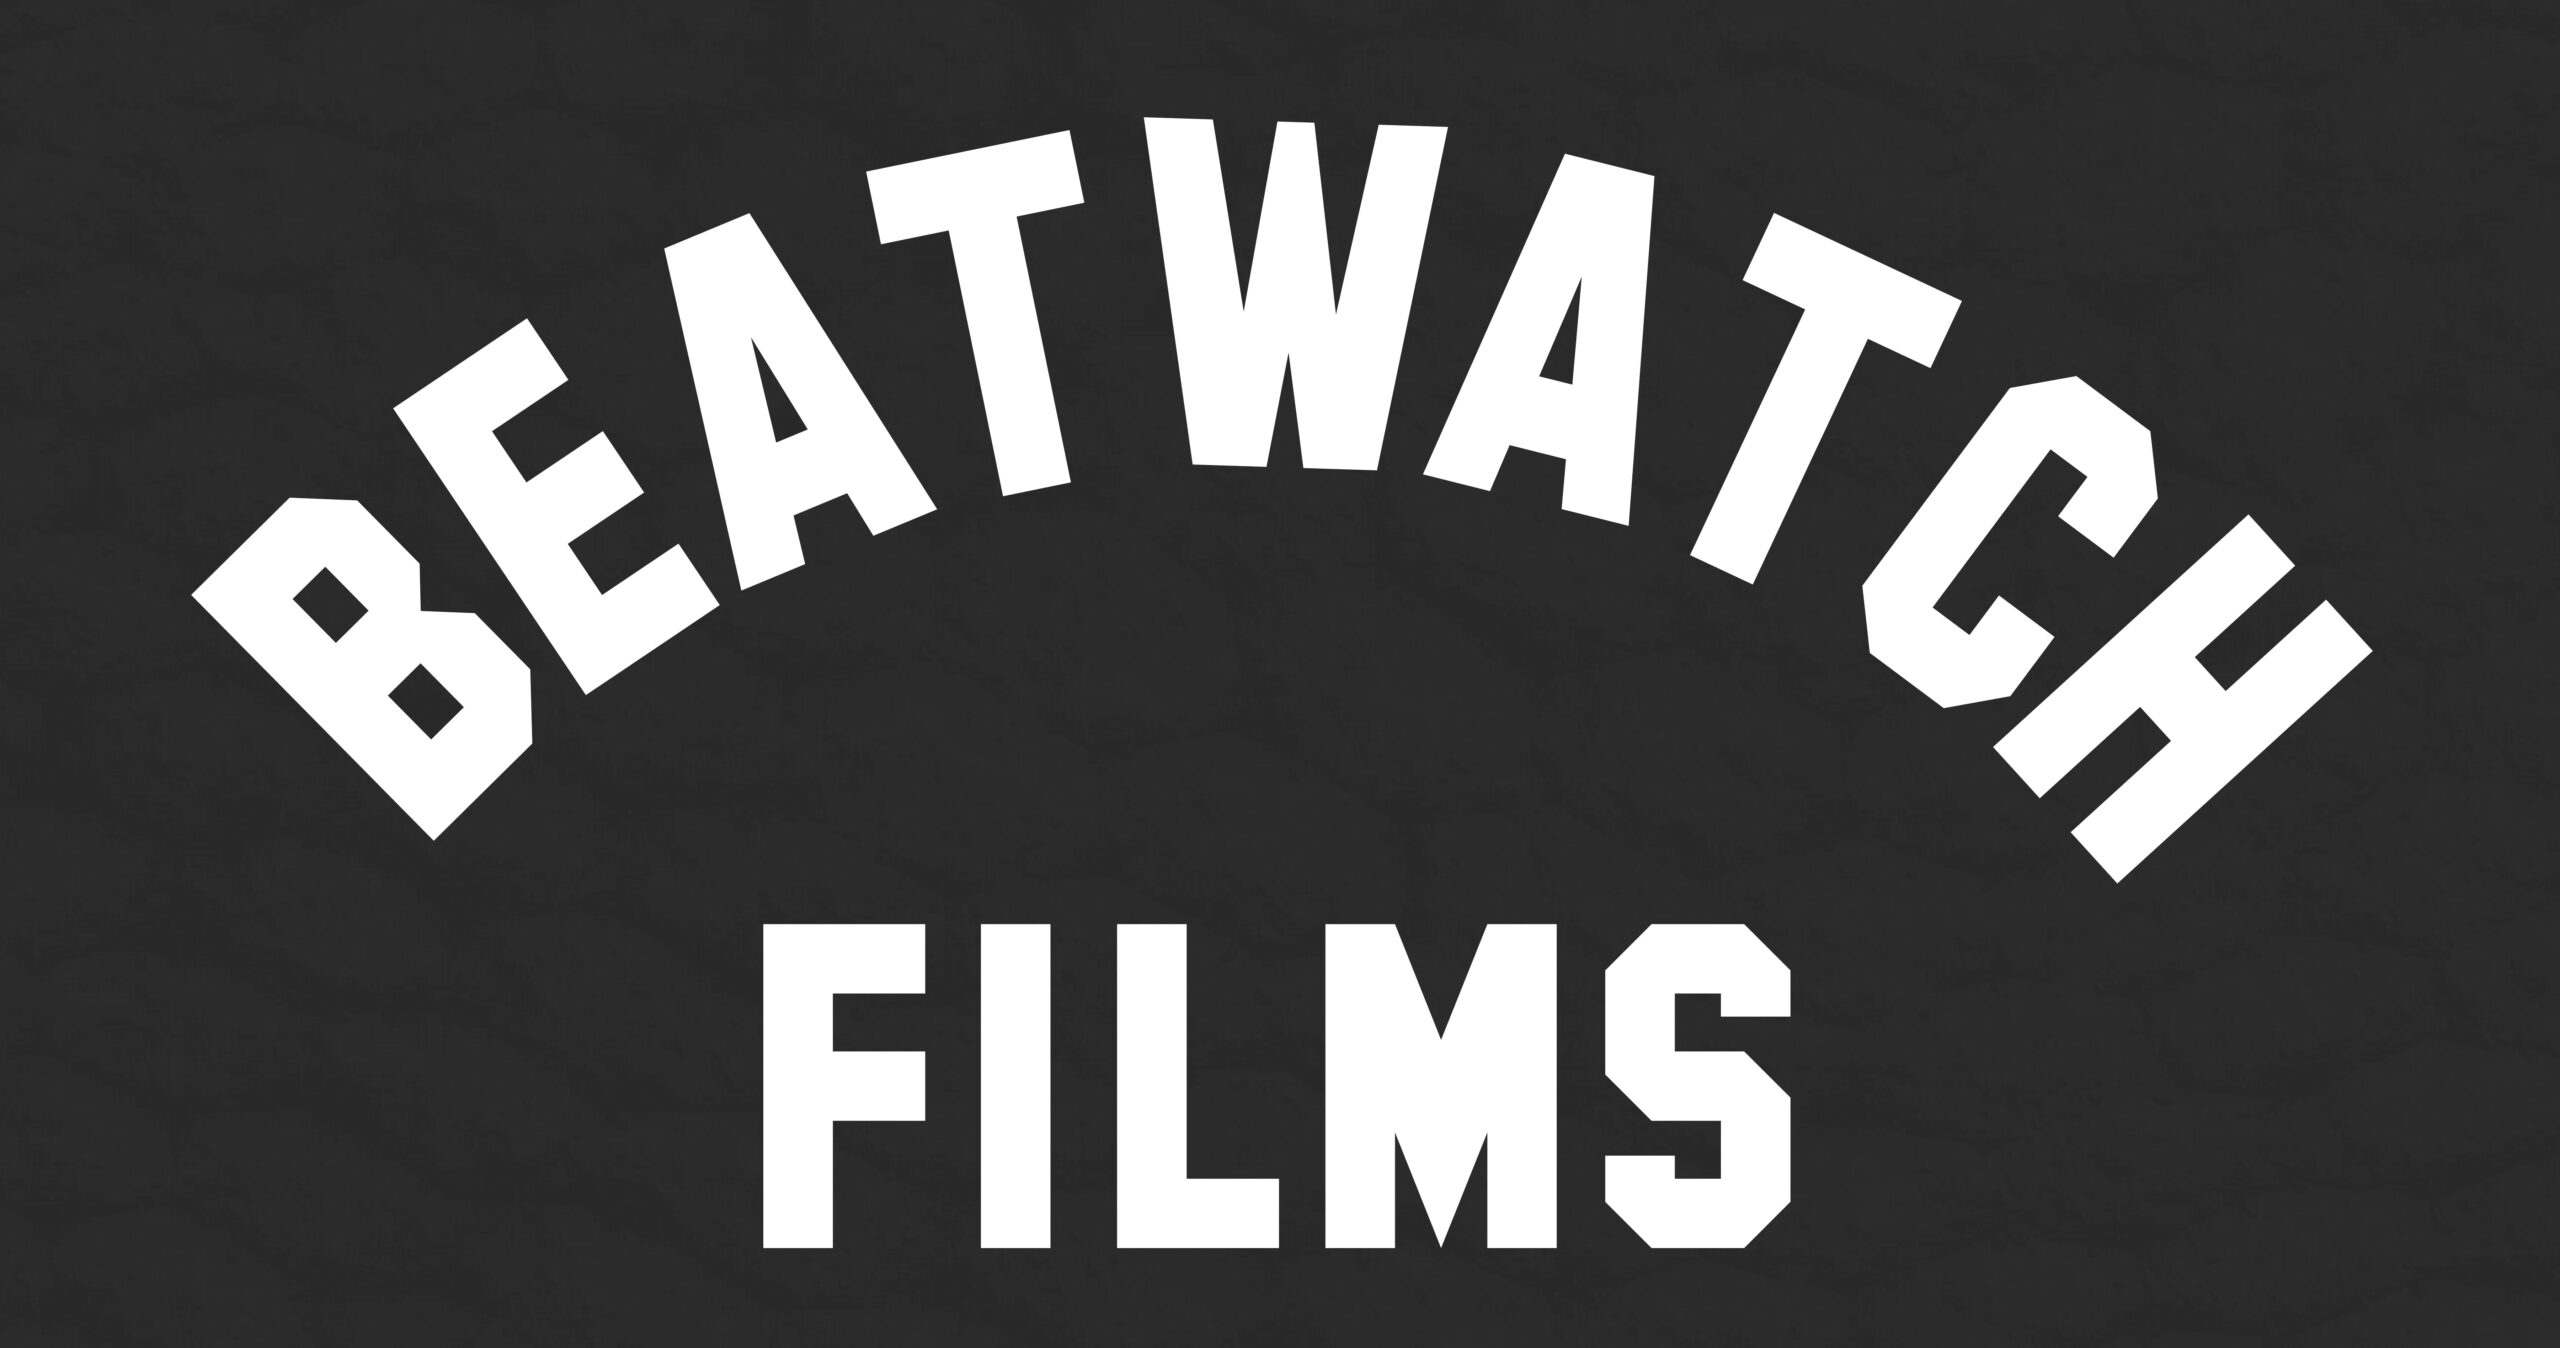 BEATWATCH FILMS -